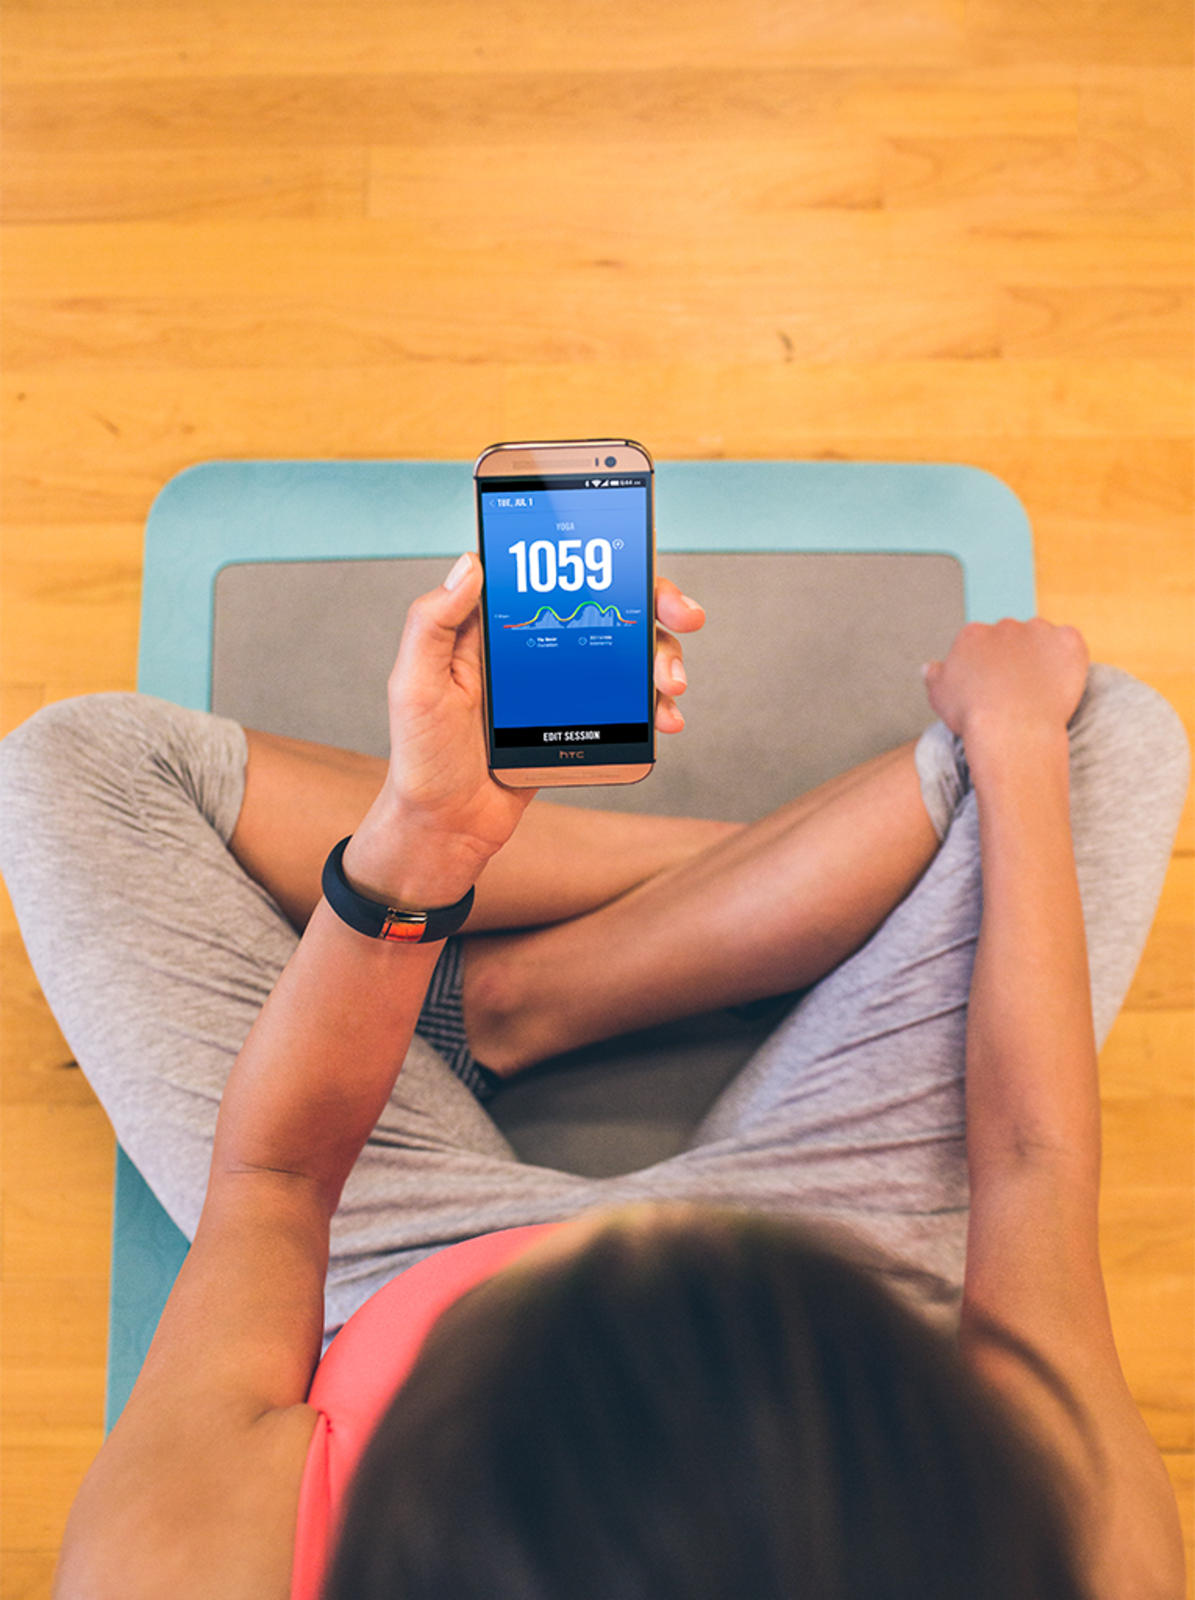 Nike+ FuelBand App for Android Now Available - Nike News